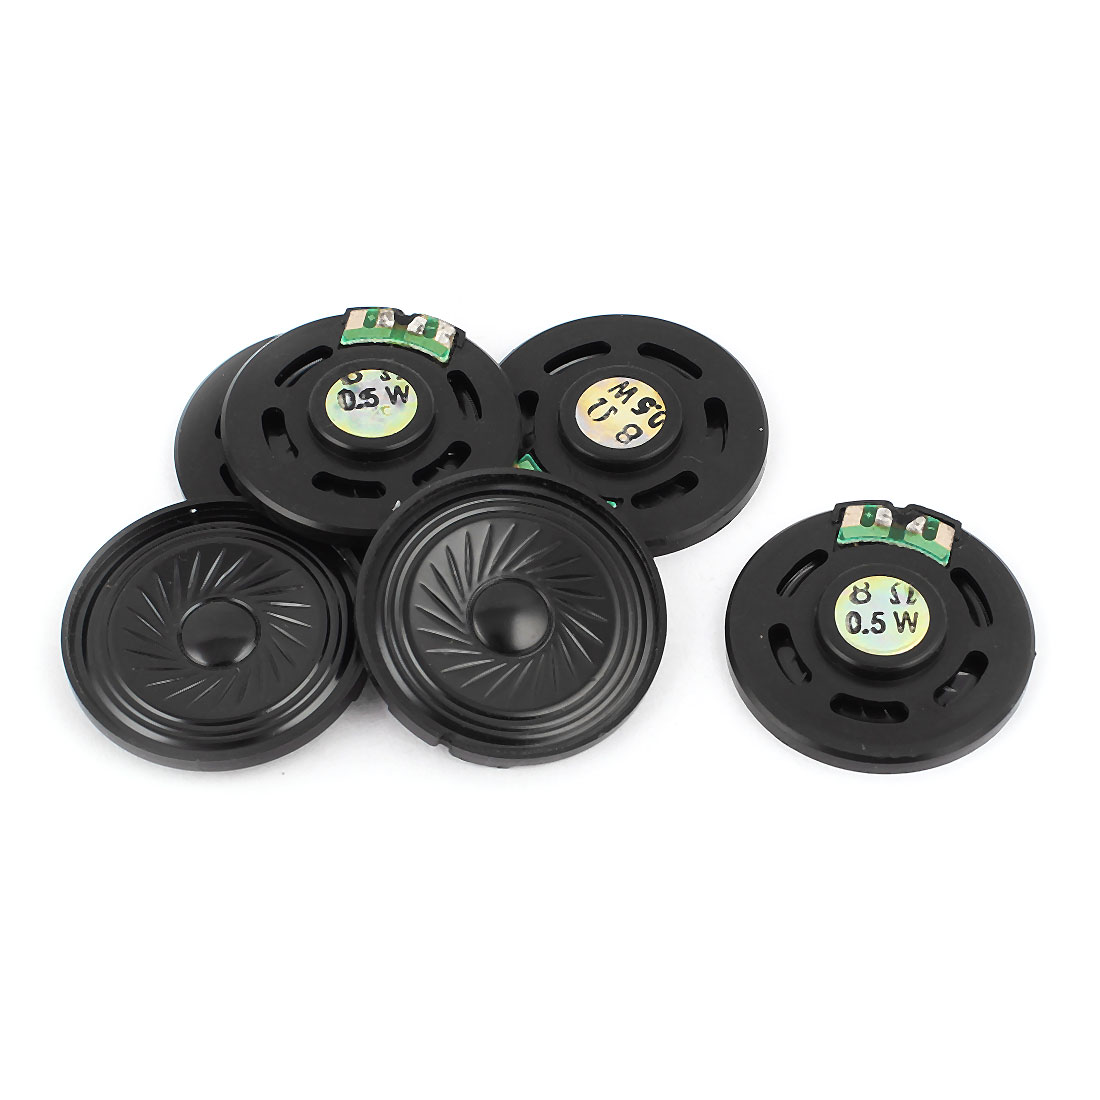 0.5W 40mm Diameter 8 Ohm Internal Mini Magnet Speaker Loudspeaker 6Pcs